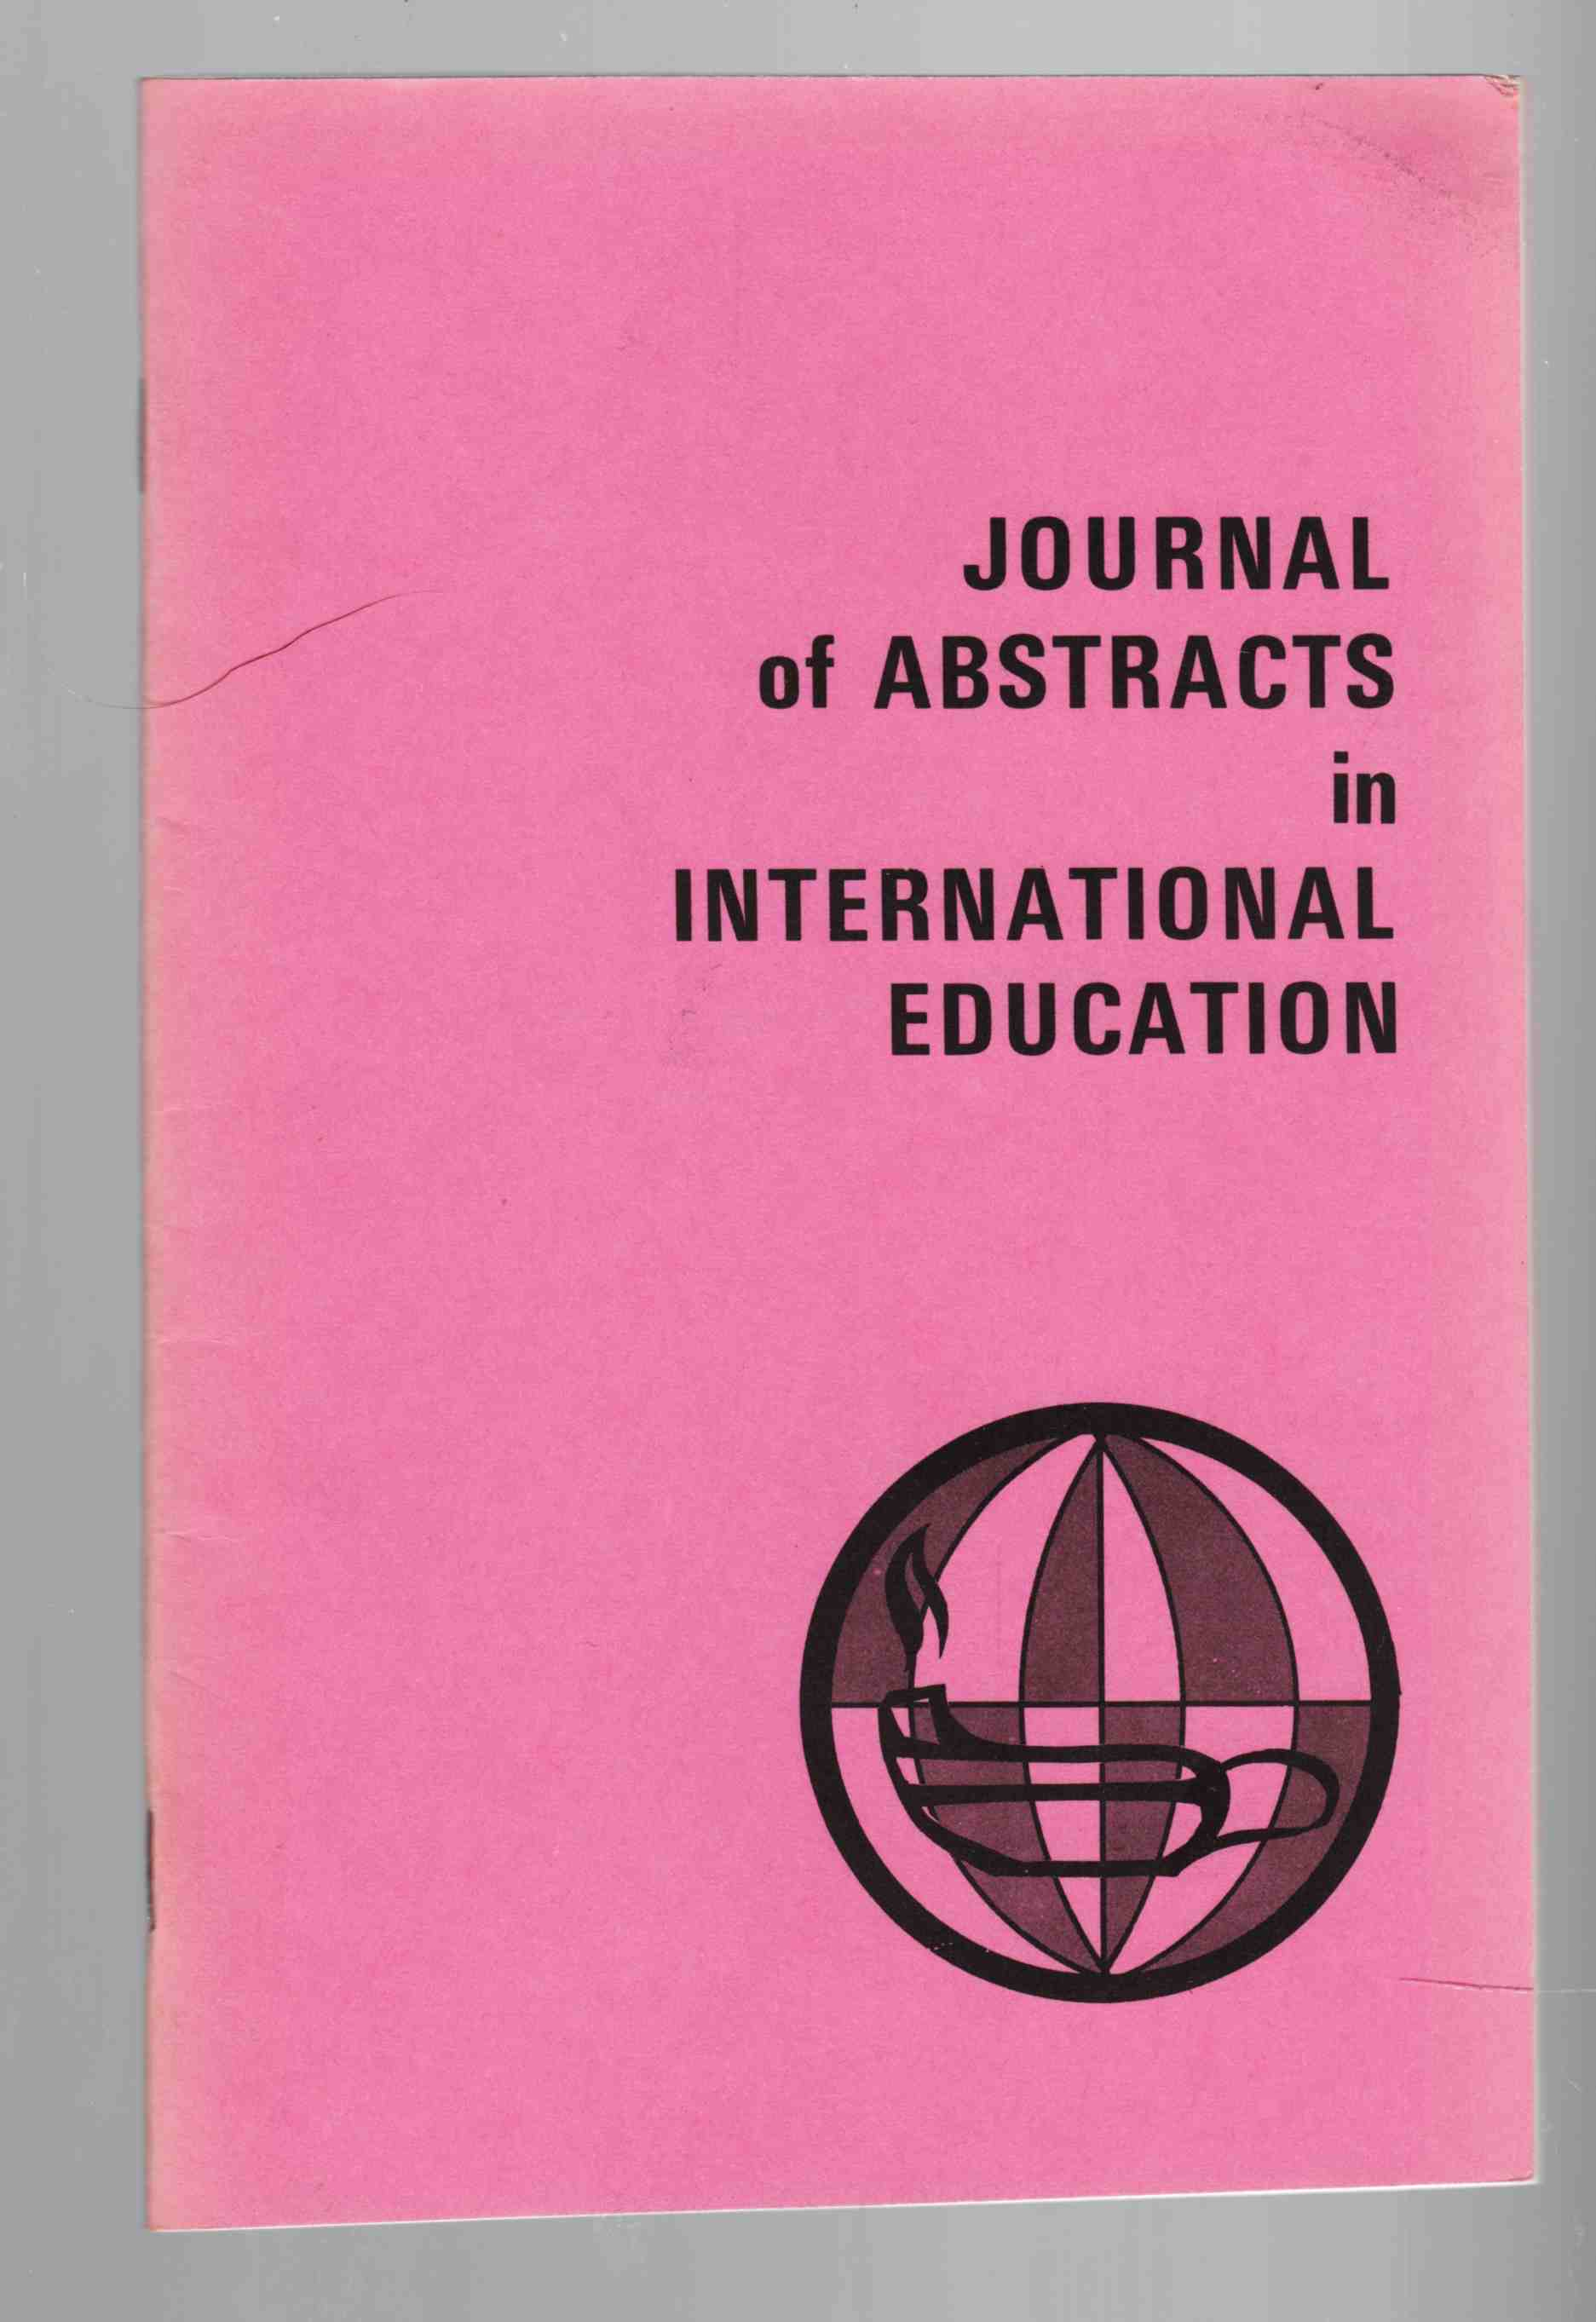 Image for Journal of Abstracts in International Education Vol. 4 No. 1 Fall / Winter 1973-1974